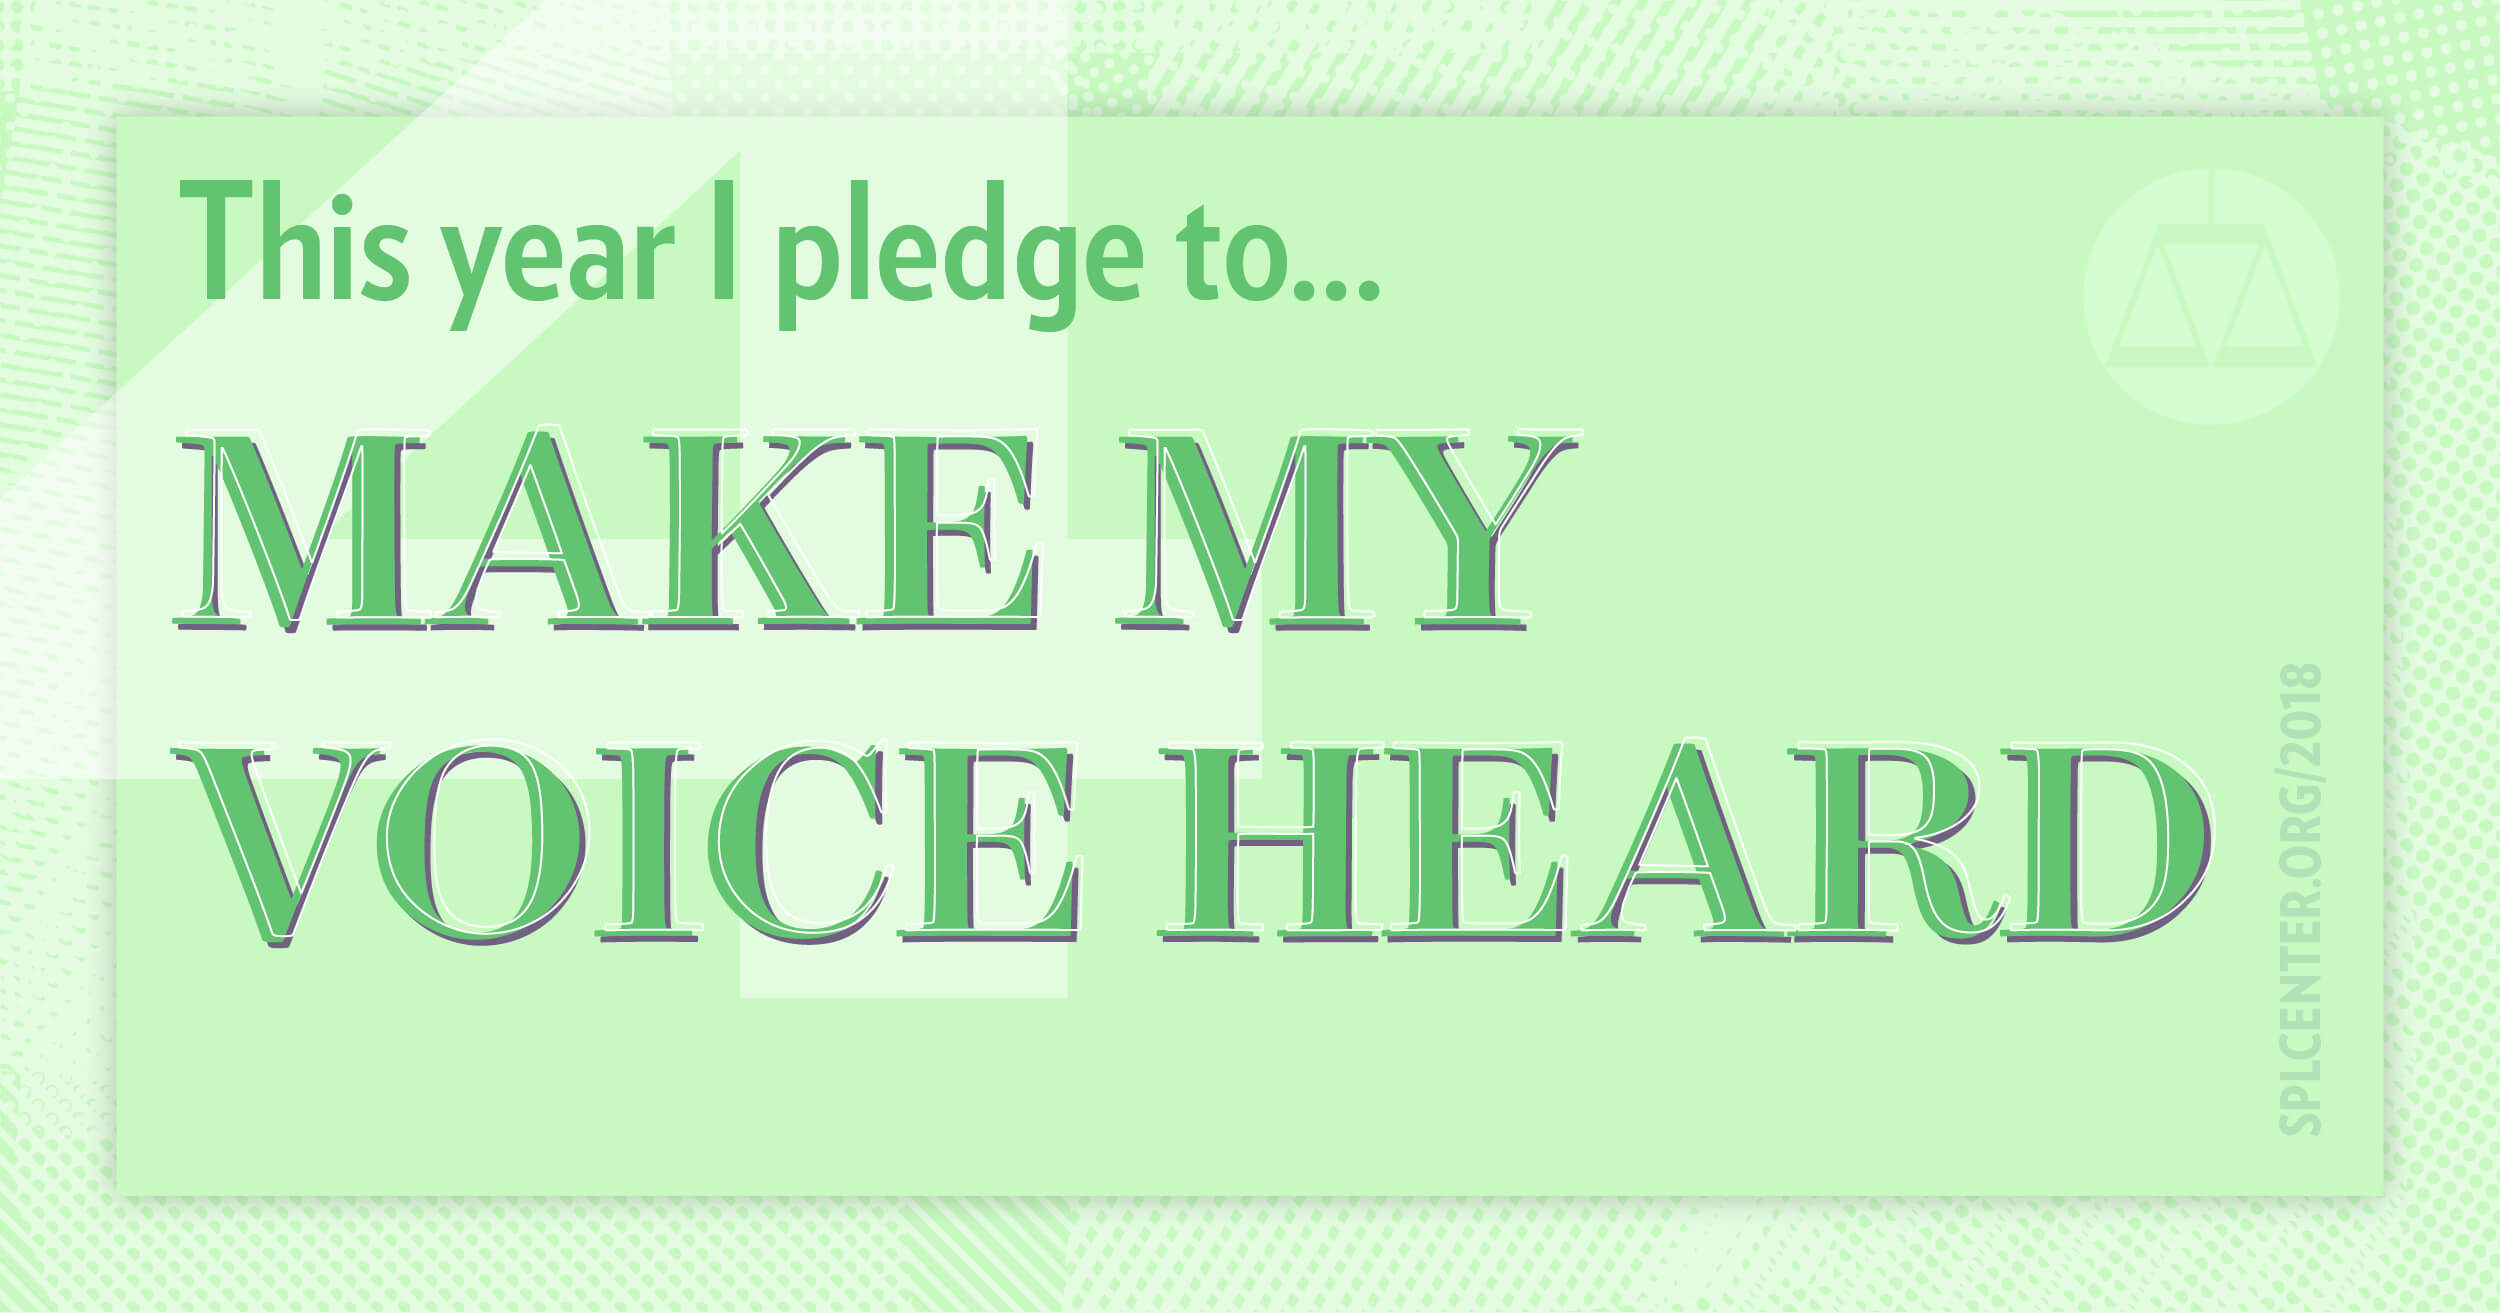 Pledge to make your voice heard.